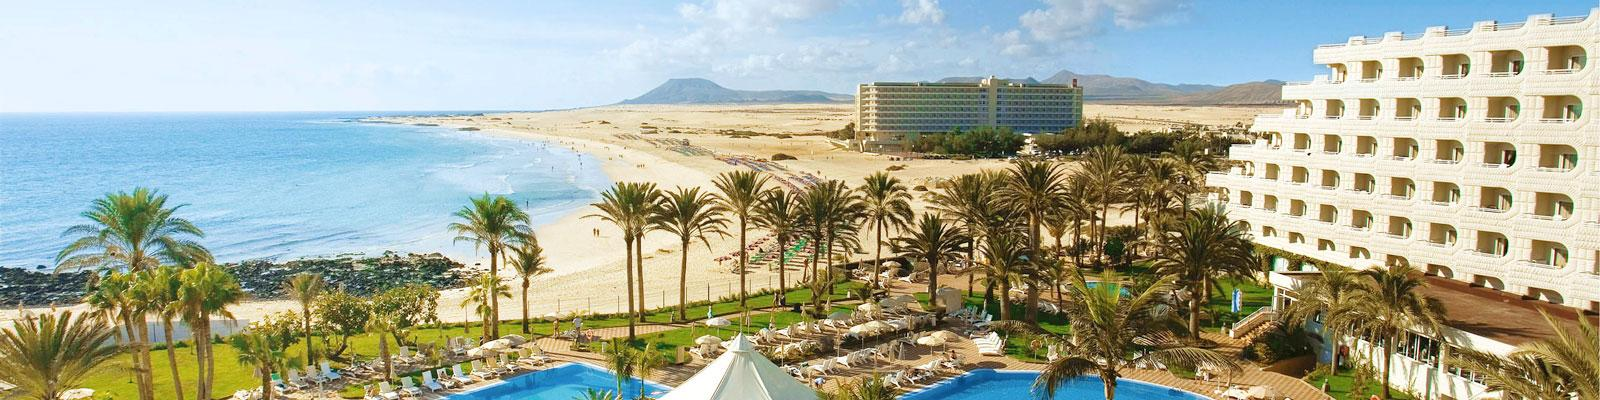 September & October 2016 - Fuerteventura Holiday Deal